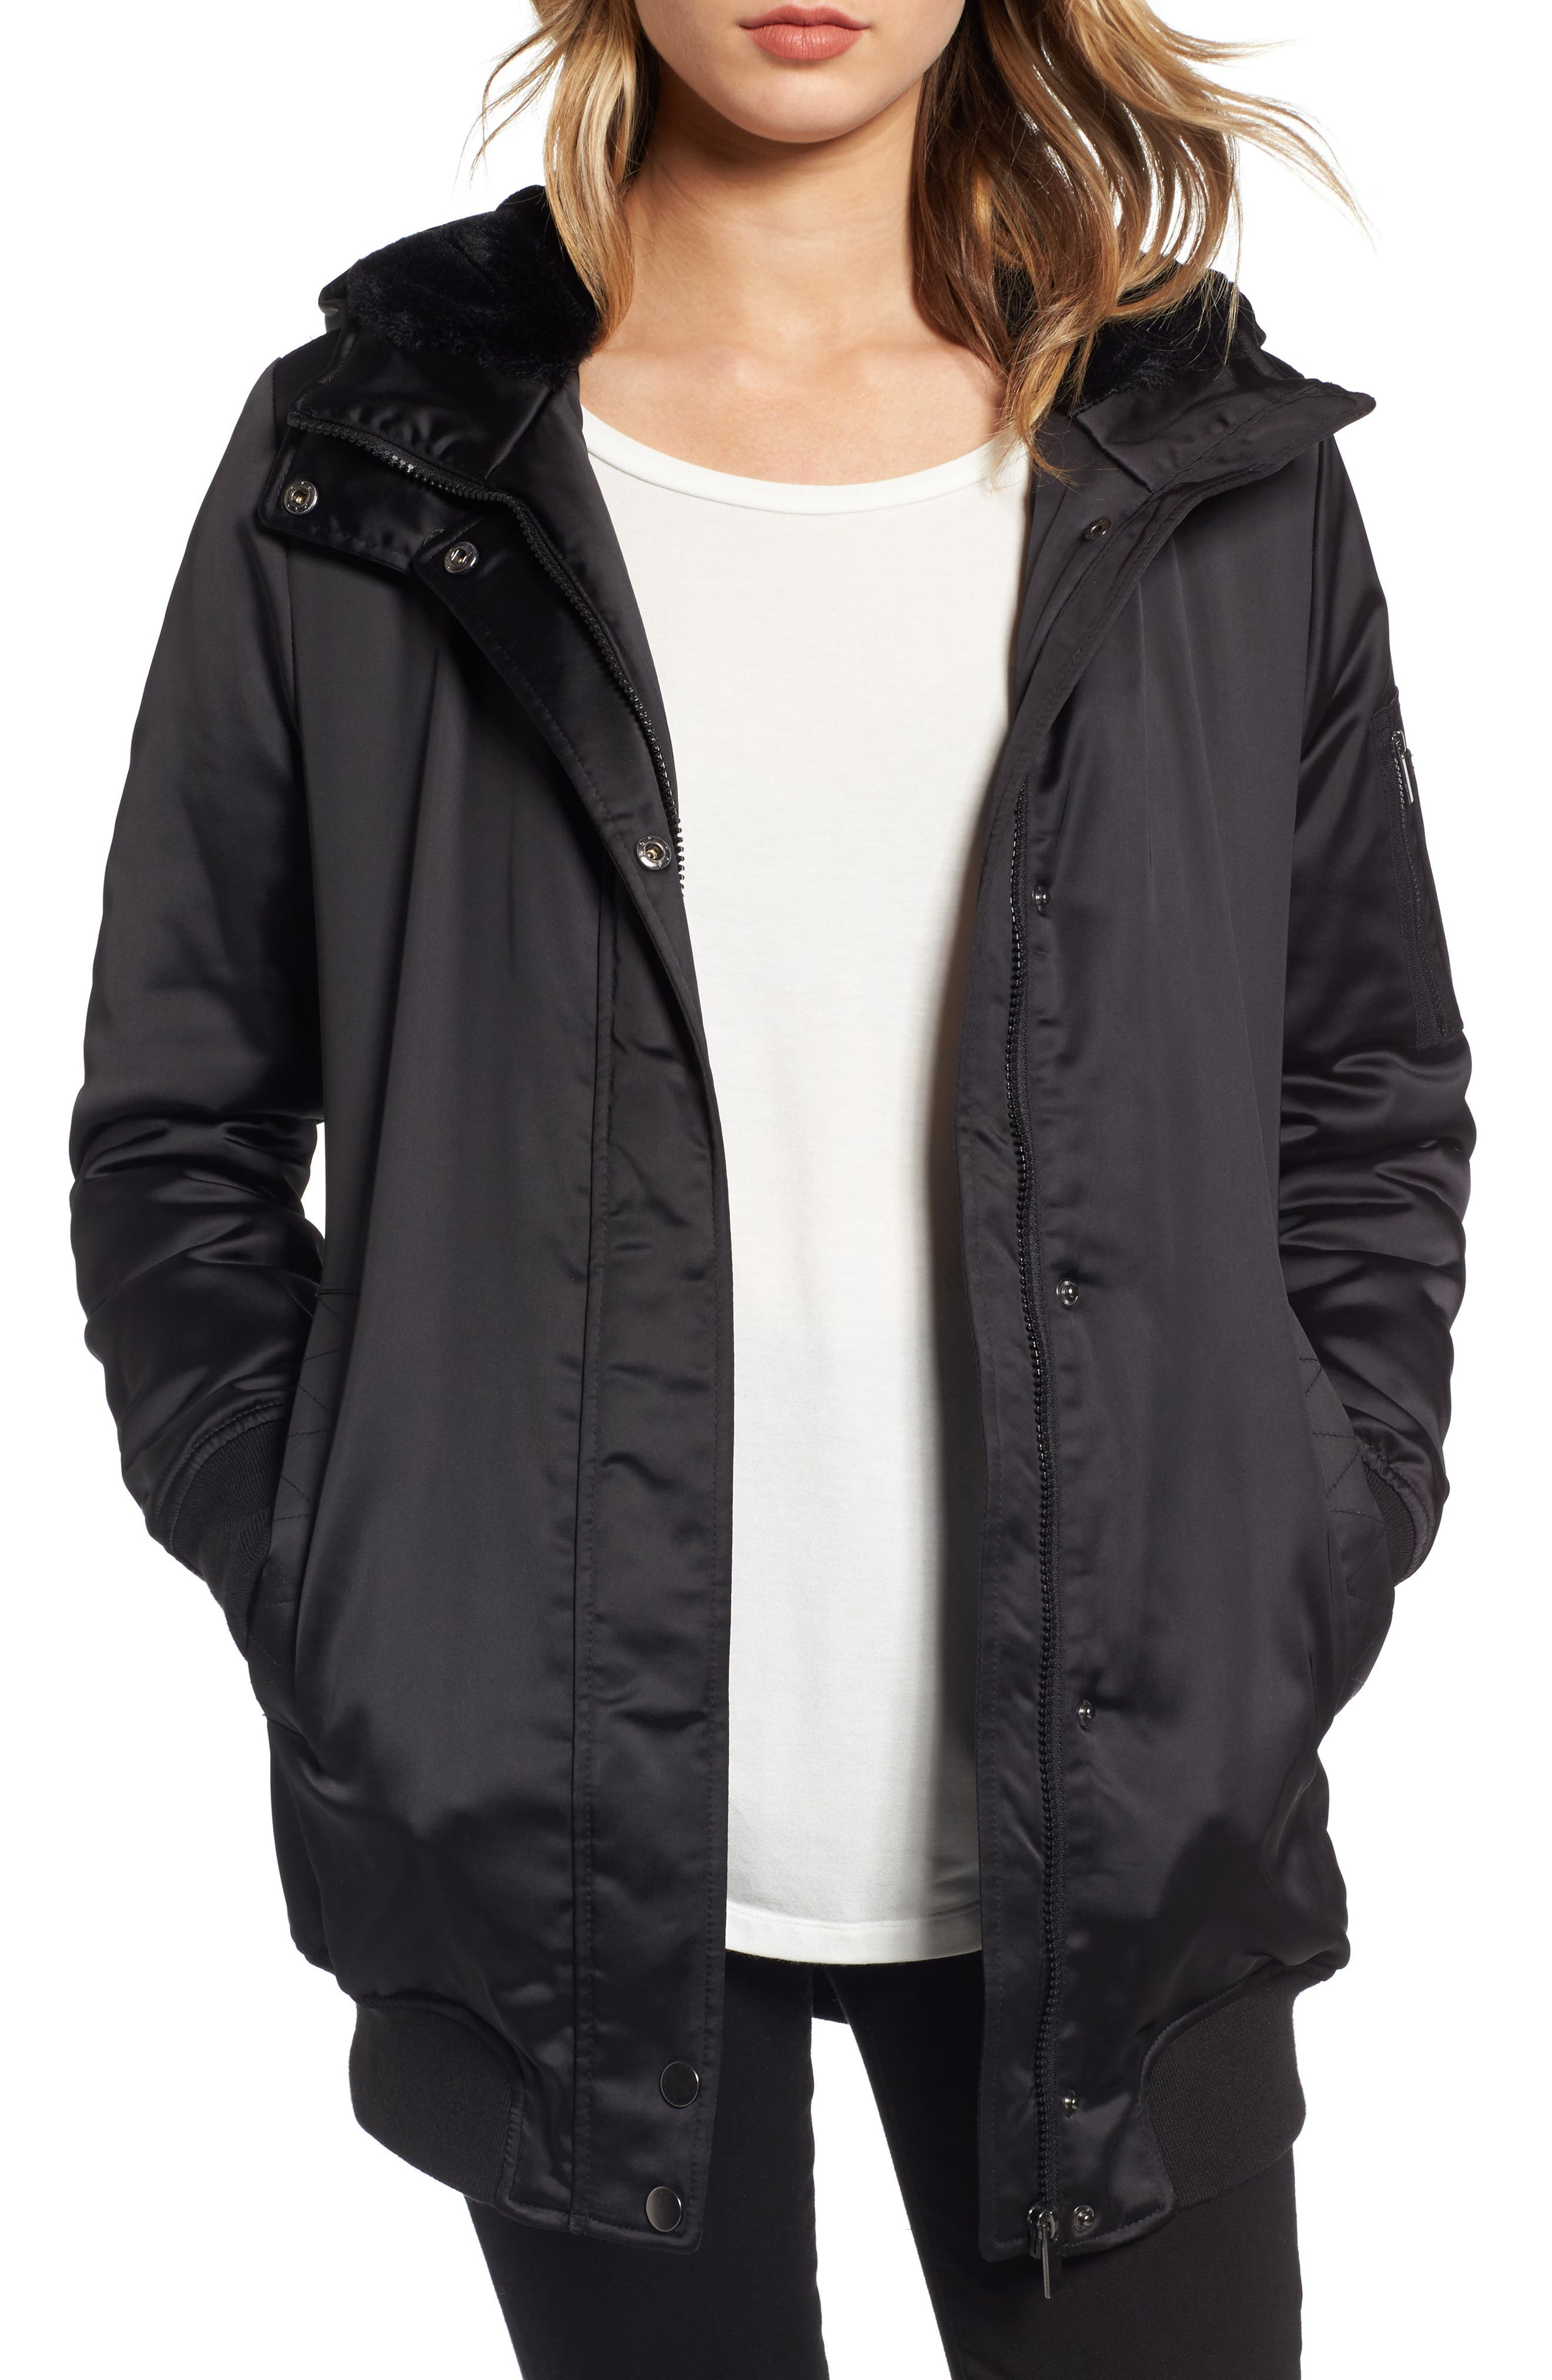 Alternate Image 1 Selected - Maralyn & Me Longline Hooded Bomber Jacket